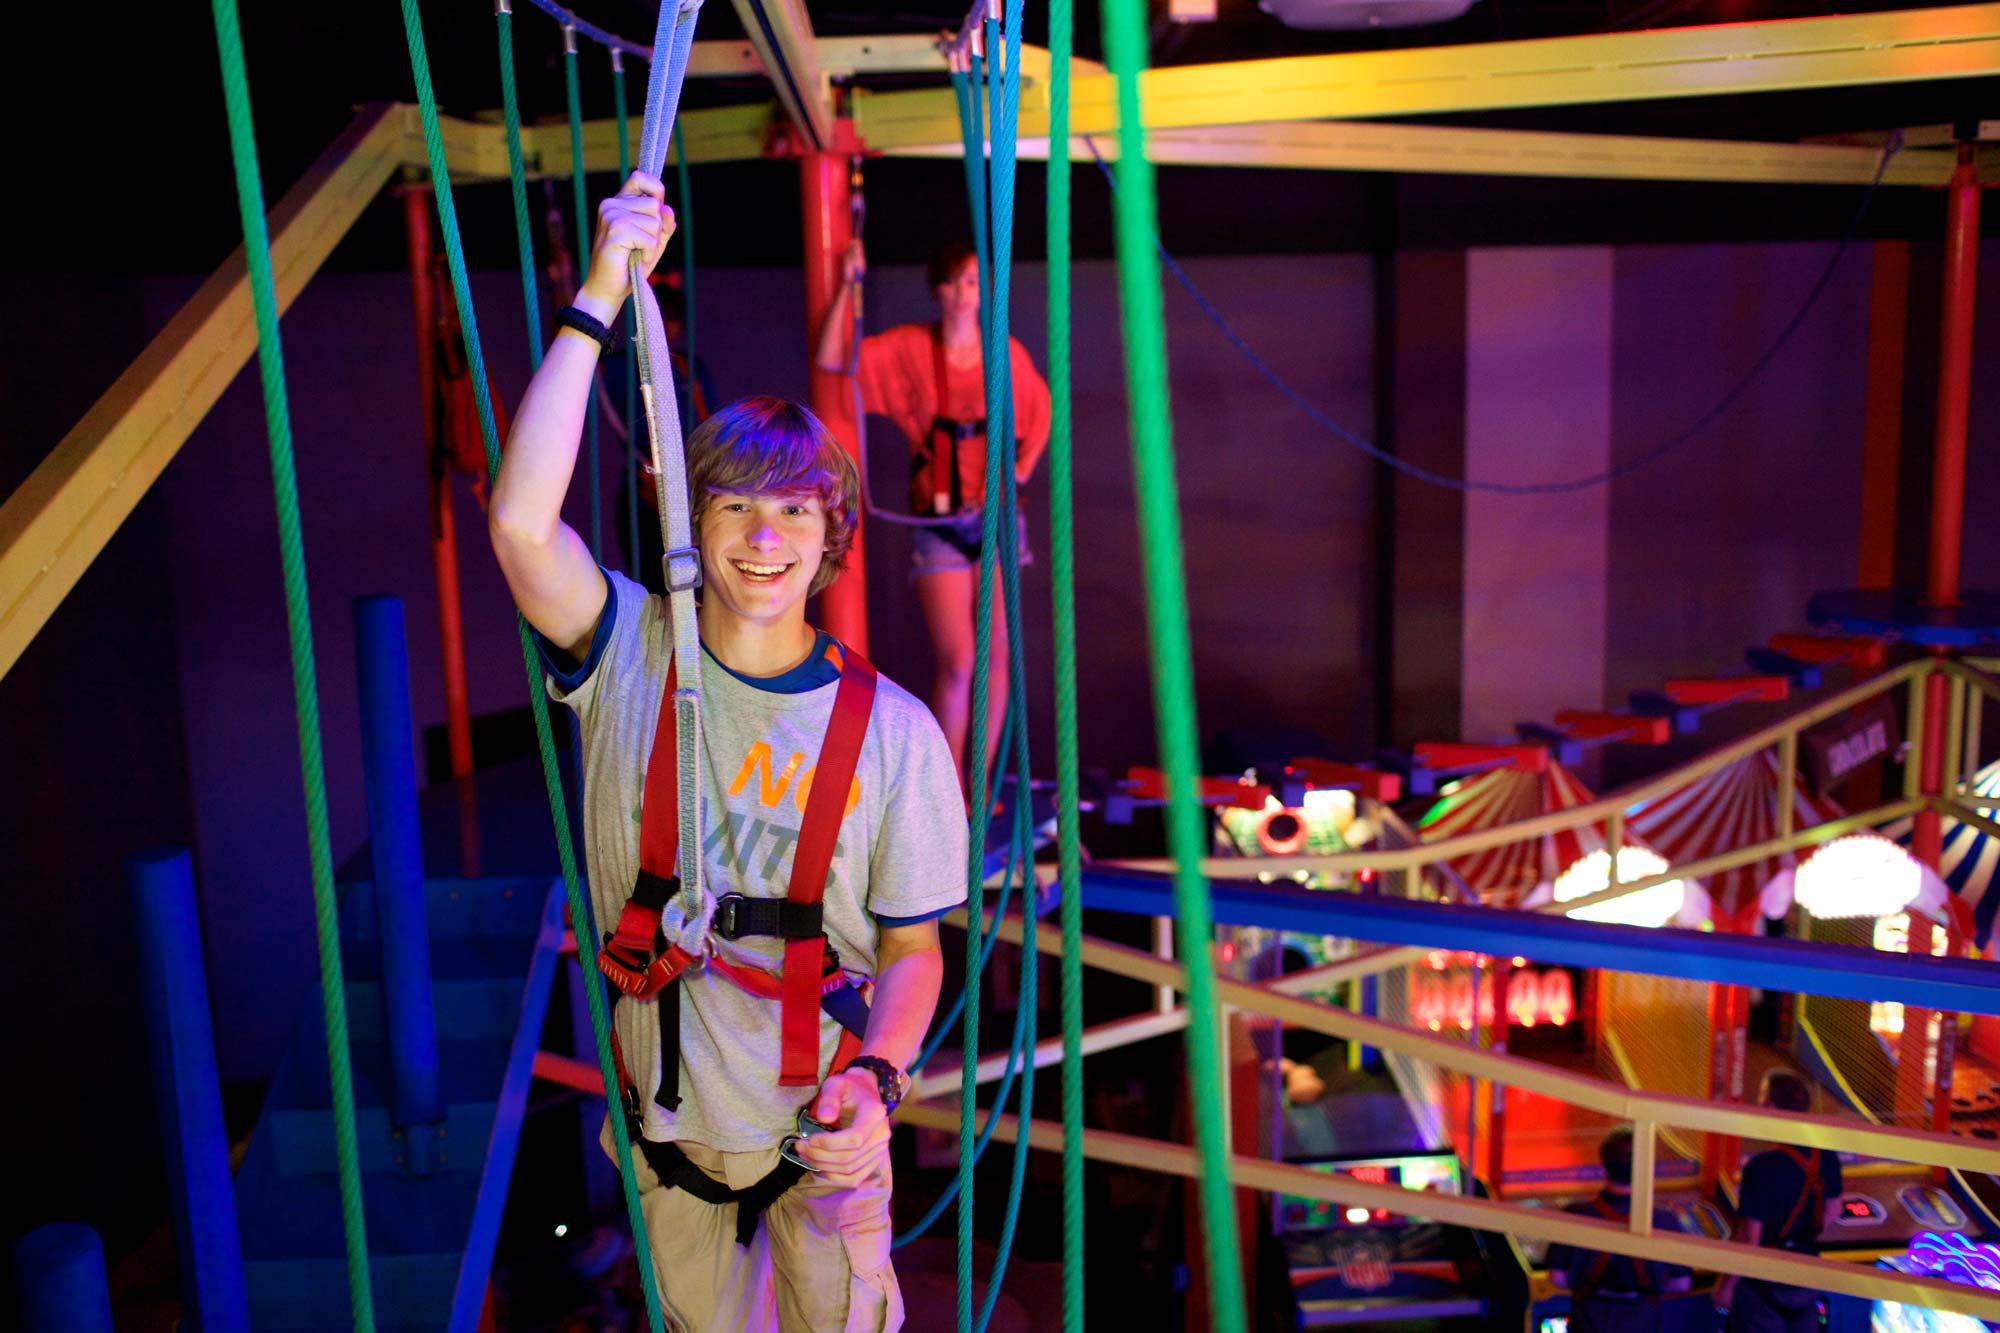 Copy of Ropes course for Teens